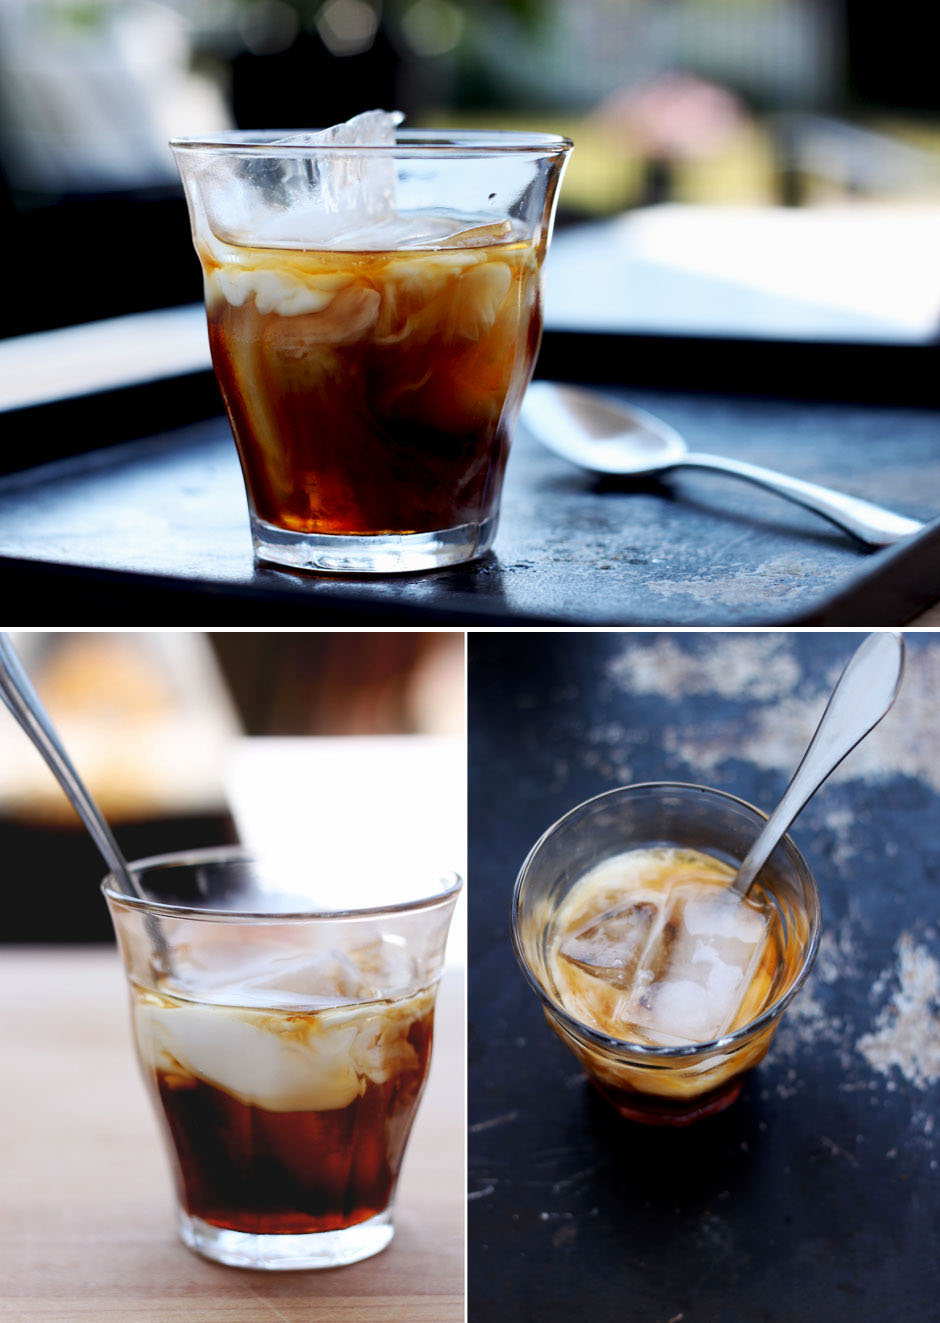 how to make cold brewed coffee at home - The First Mess